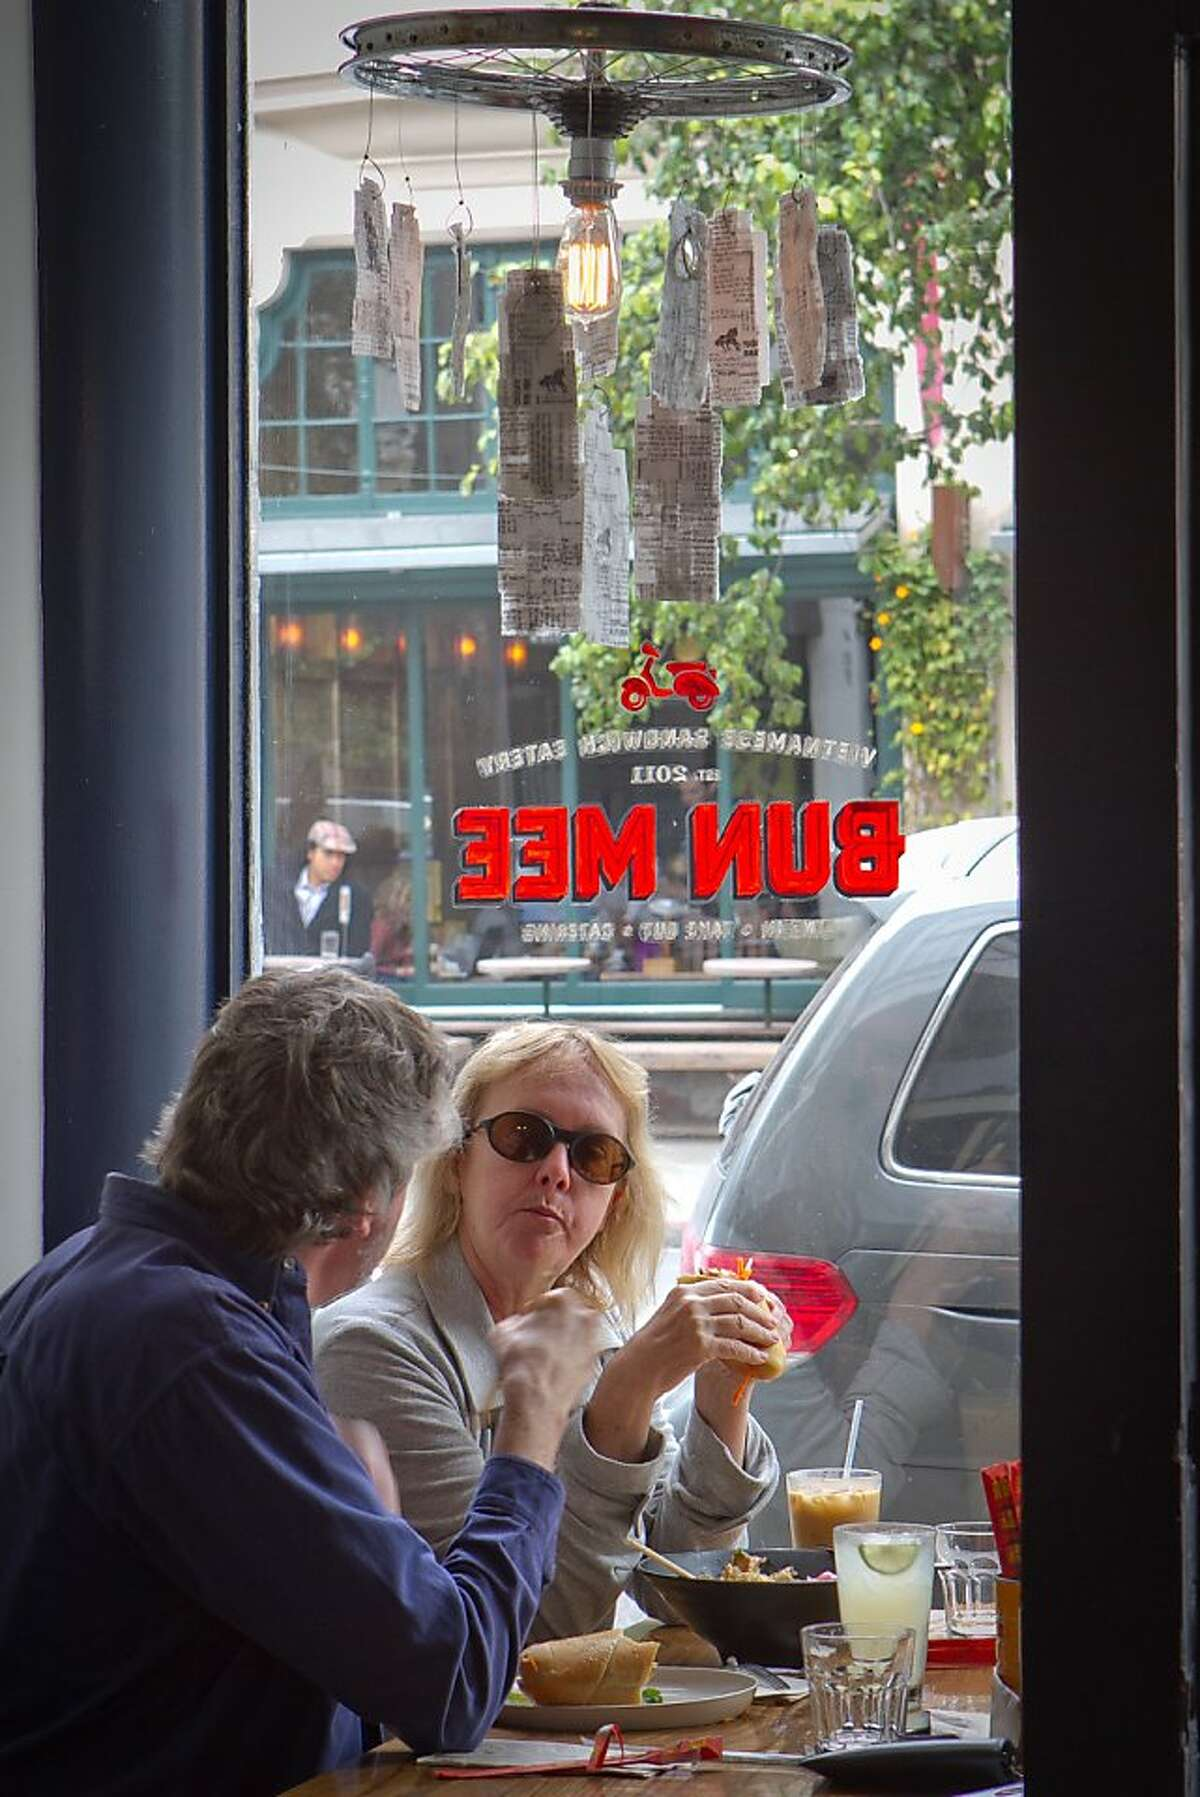 Diners enjoy lunch at Bun Mee restaurant in San Francisco, Calif., on September 15th, 2011.